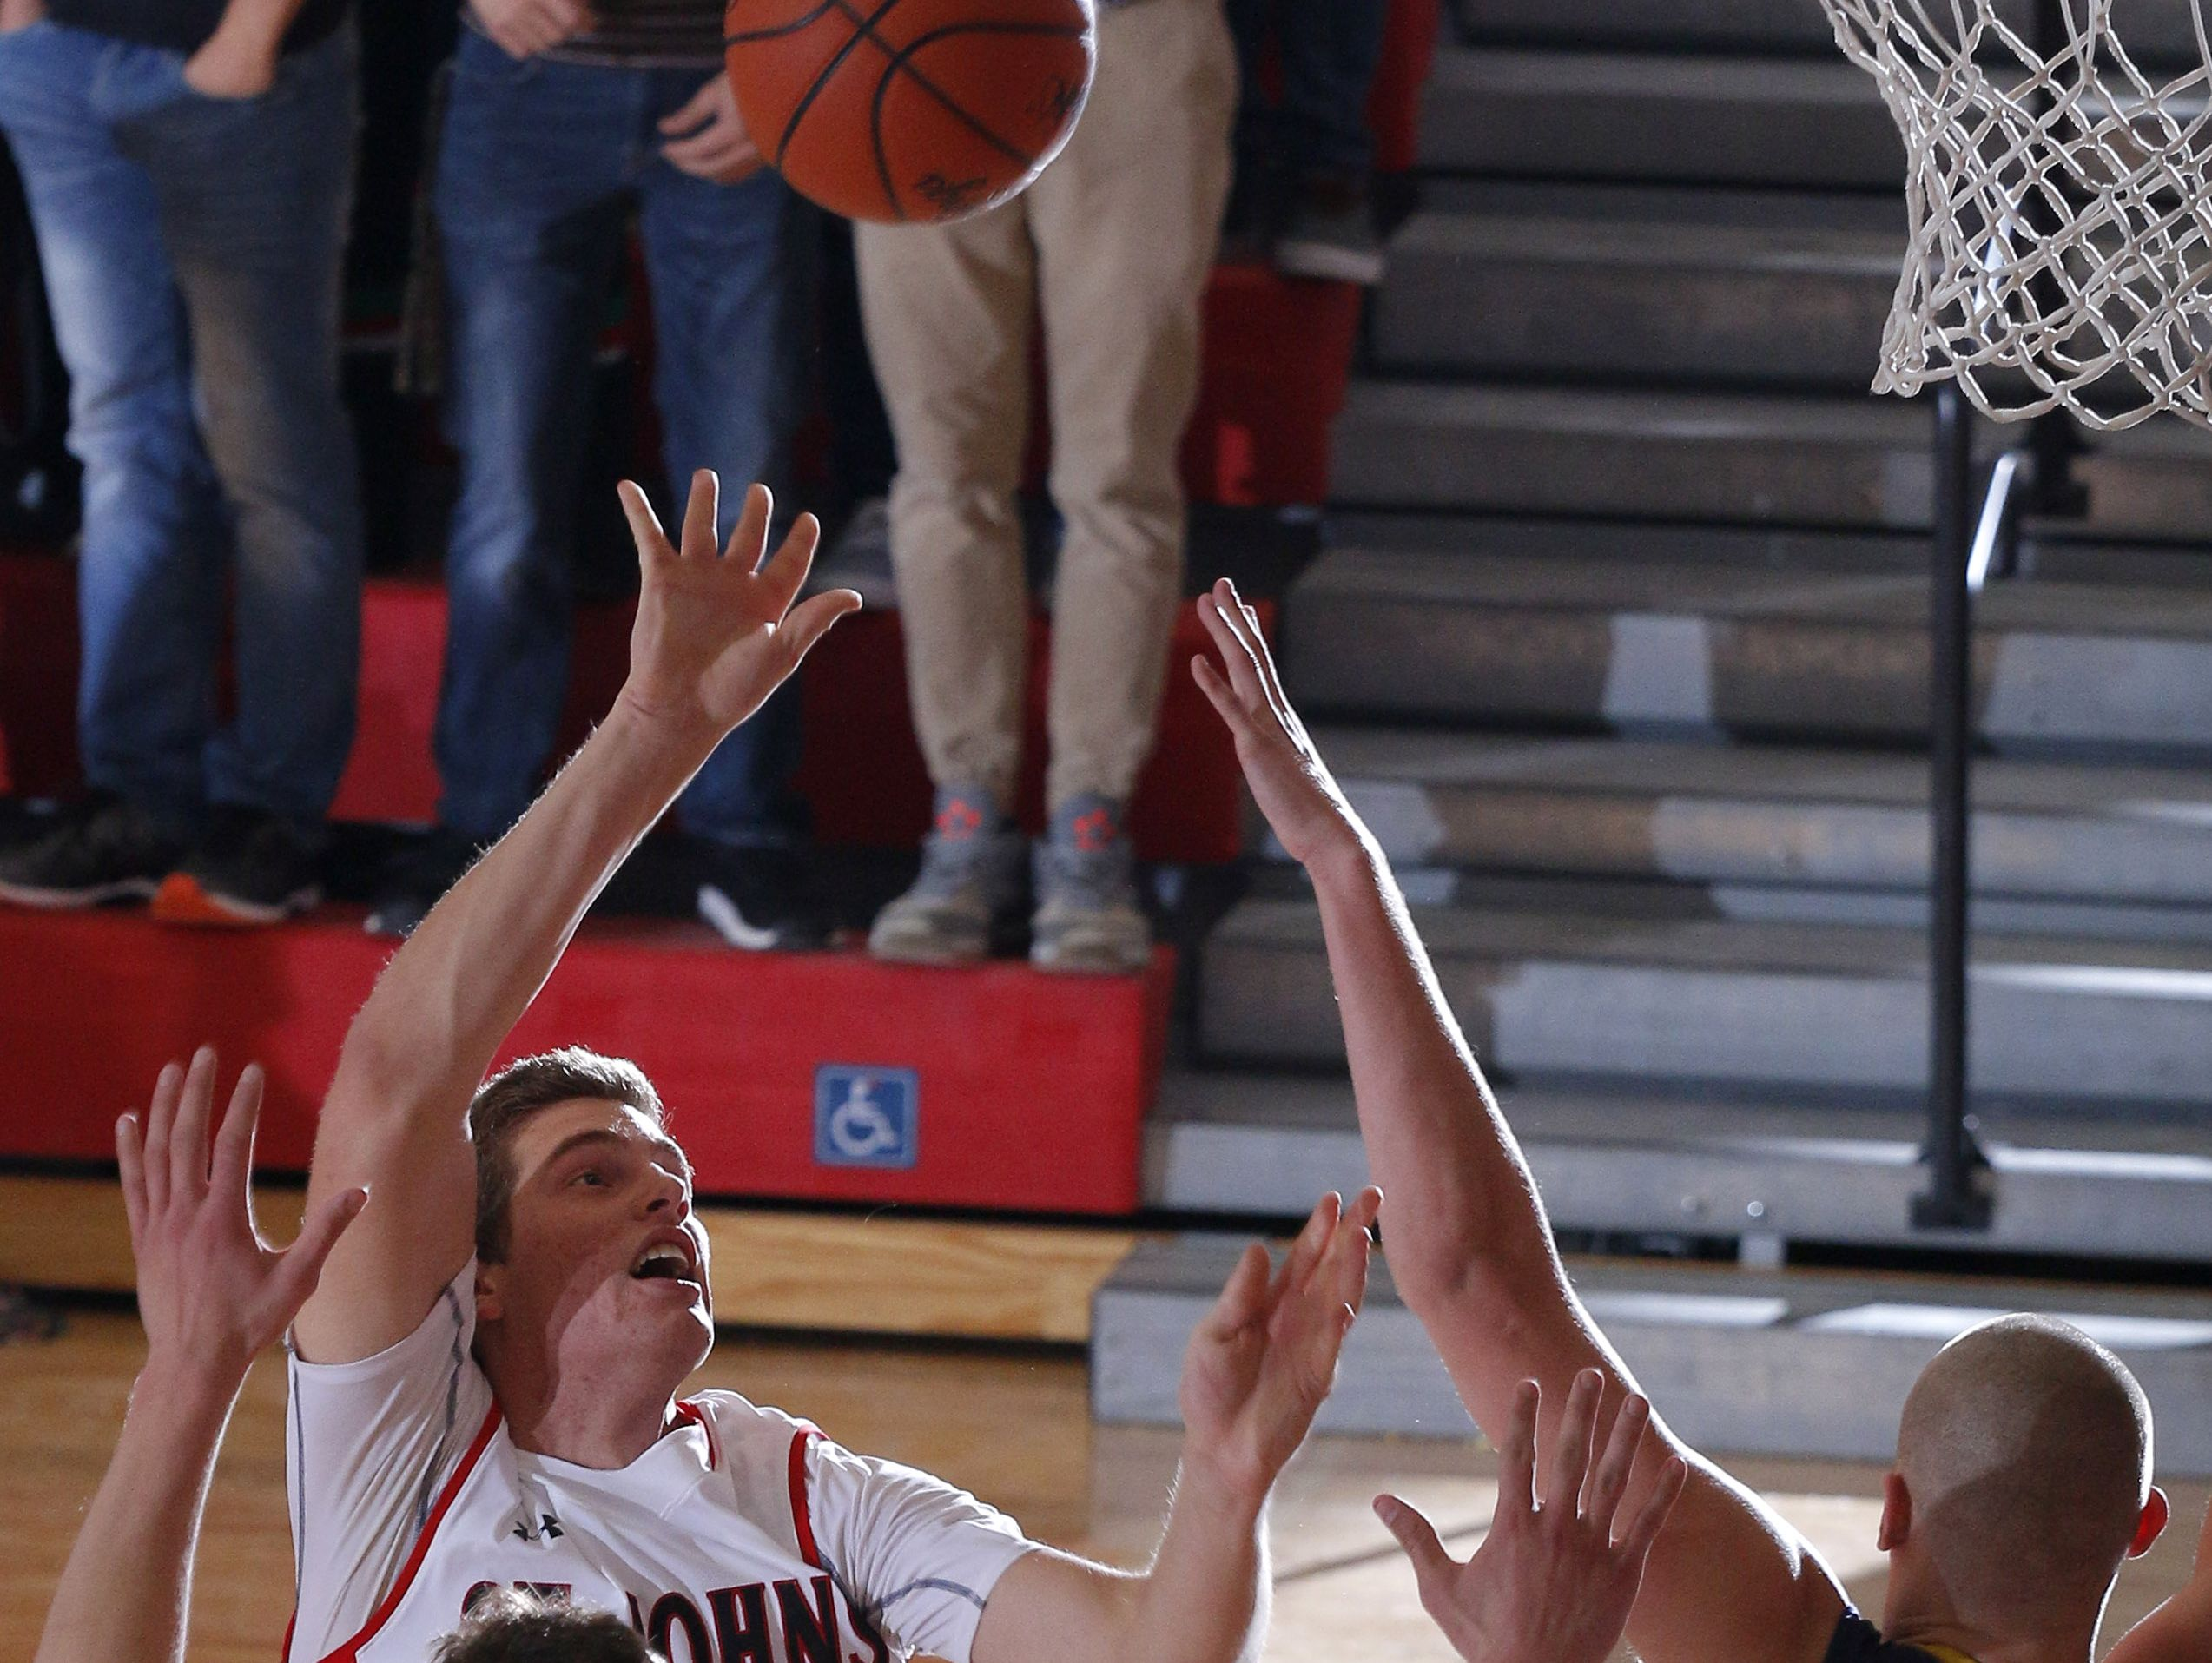 St. Johns' Caleb Paksi, left rear, shoots against DeWitt's Tanner Reha (44) and Luke Hyde (35) Friday, Dec. 16, 2016, in St. Johns, Mich.